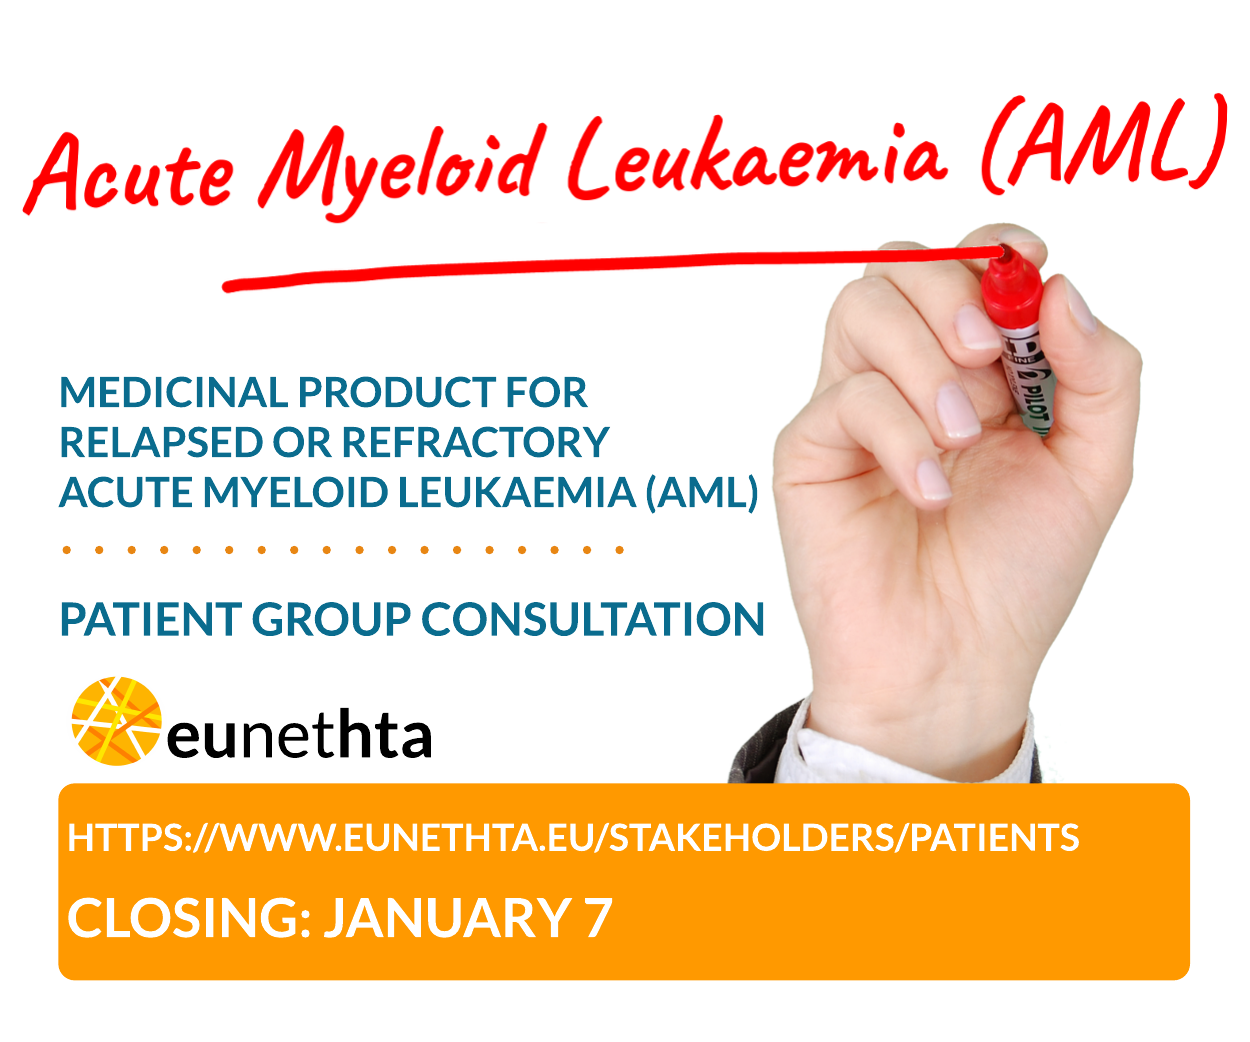 Public consultation on medicinal product for relapsed or refractory Acute Myeloid Leukaemia (AML)